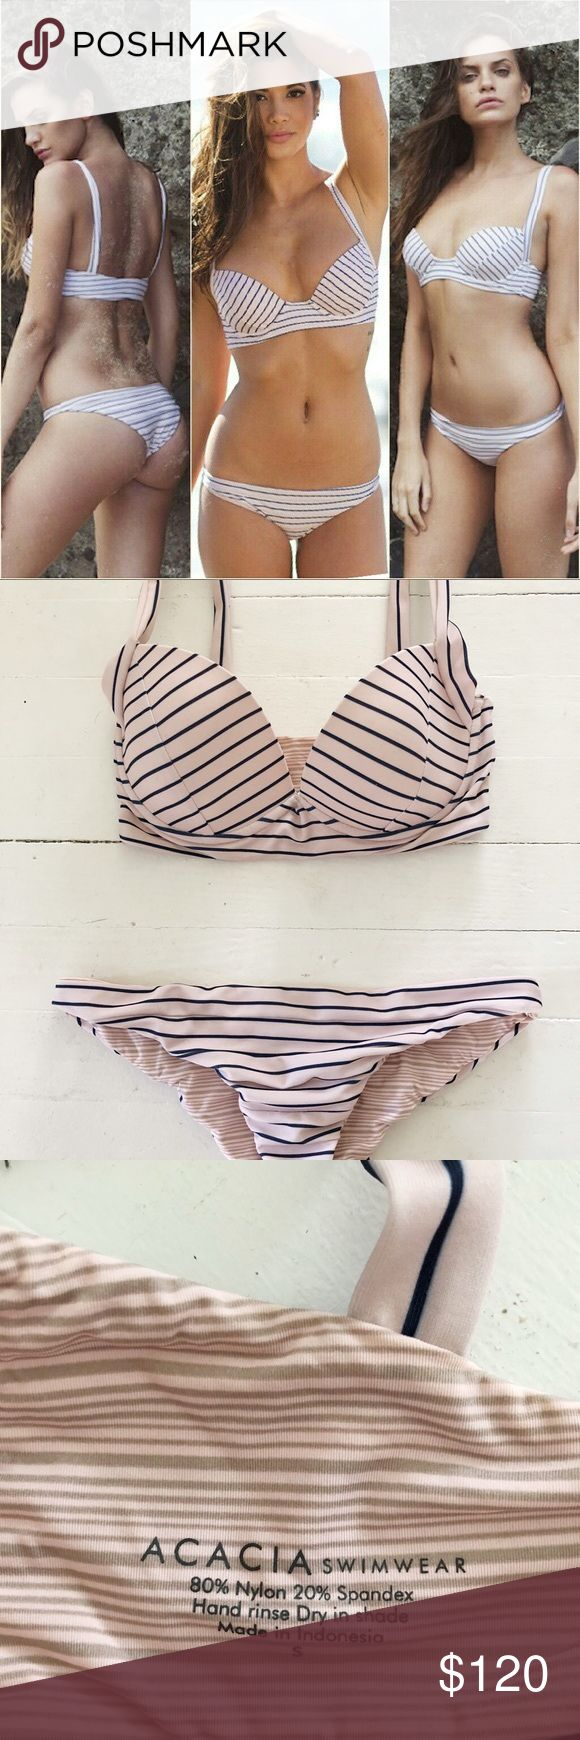 Acacia cape cod top and bottom Acacia bikini in cape cod print. The top is a size S and bottom a size M. This suit has been worn twice and has been washed and dried as instructed. The cut is very flattering the print is a super light pink and navy stripe. acacia swimwear Swim Bikinis